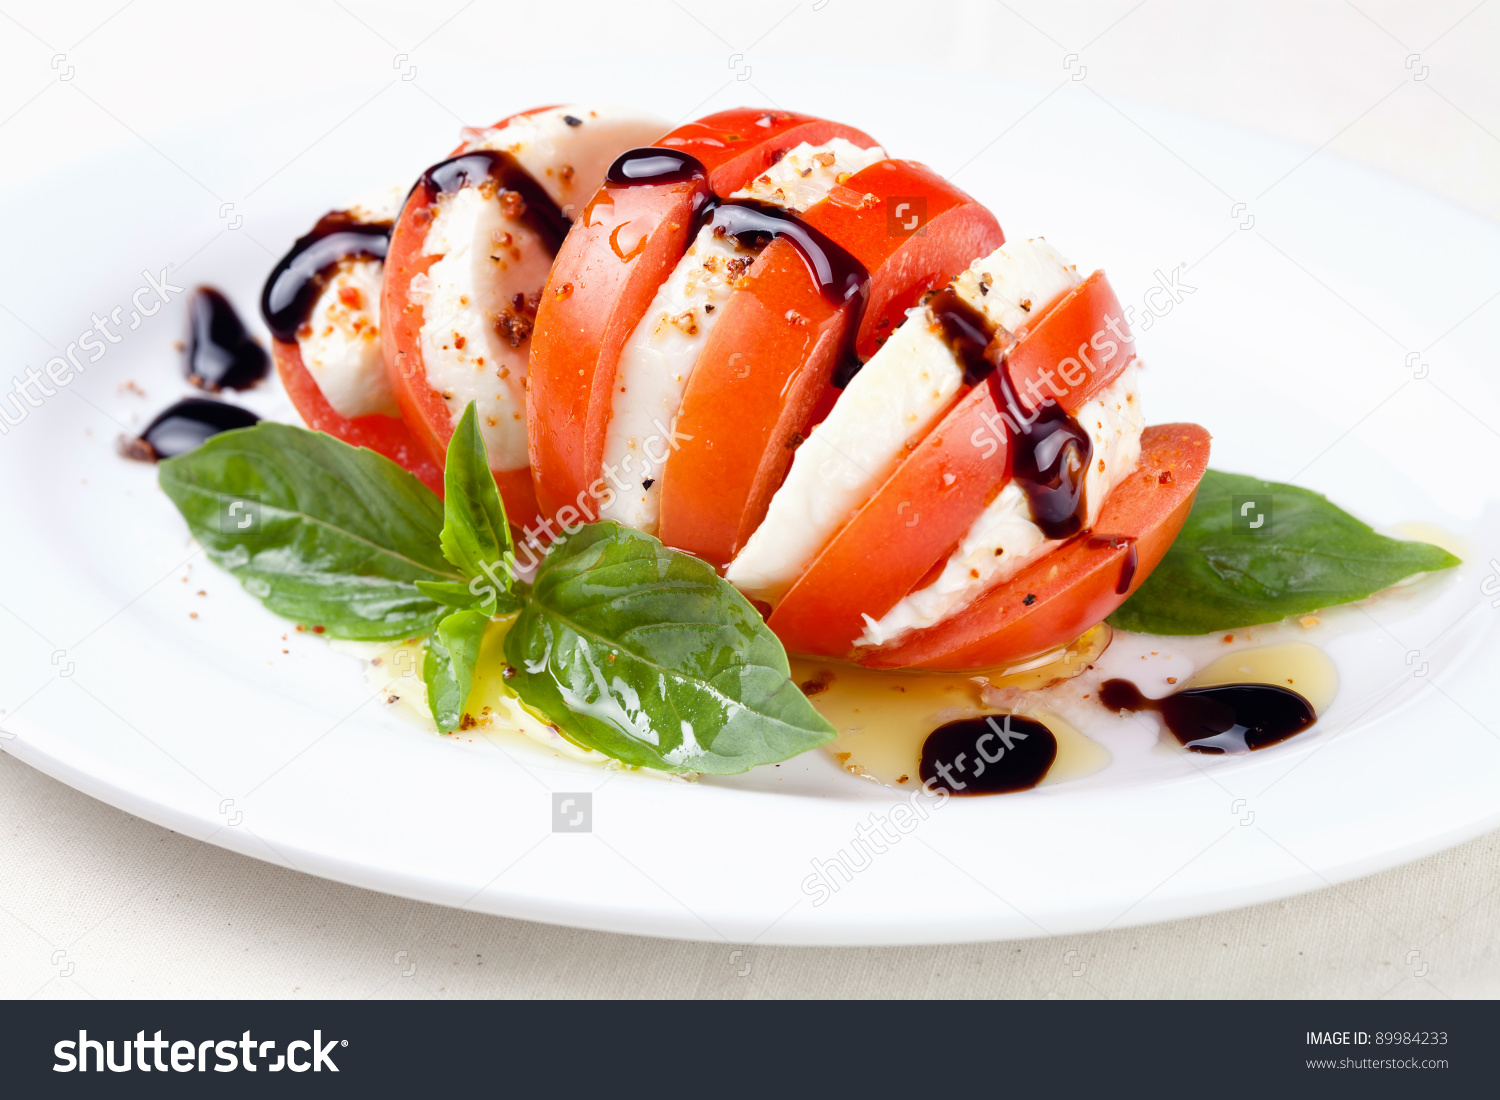 Caprese Salad Tomato Mozzarella Slices Basil Stock Photo 89984233.